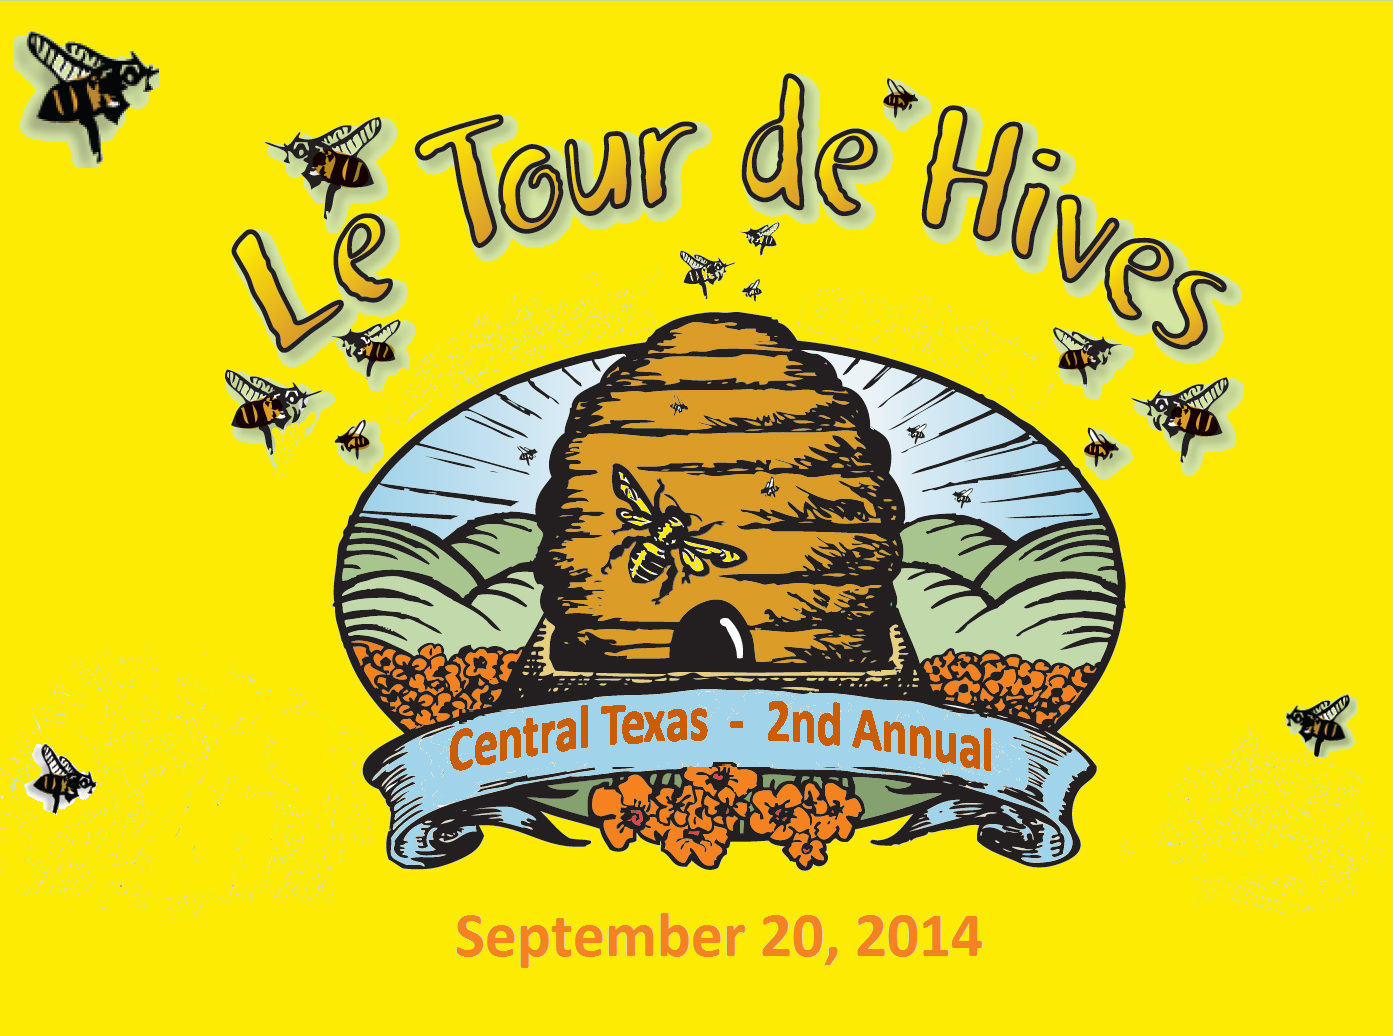 2nd Annual Tour de Hives ~ Saturday September 20th, 2014 ...